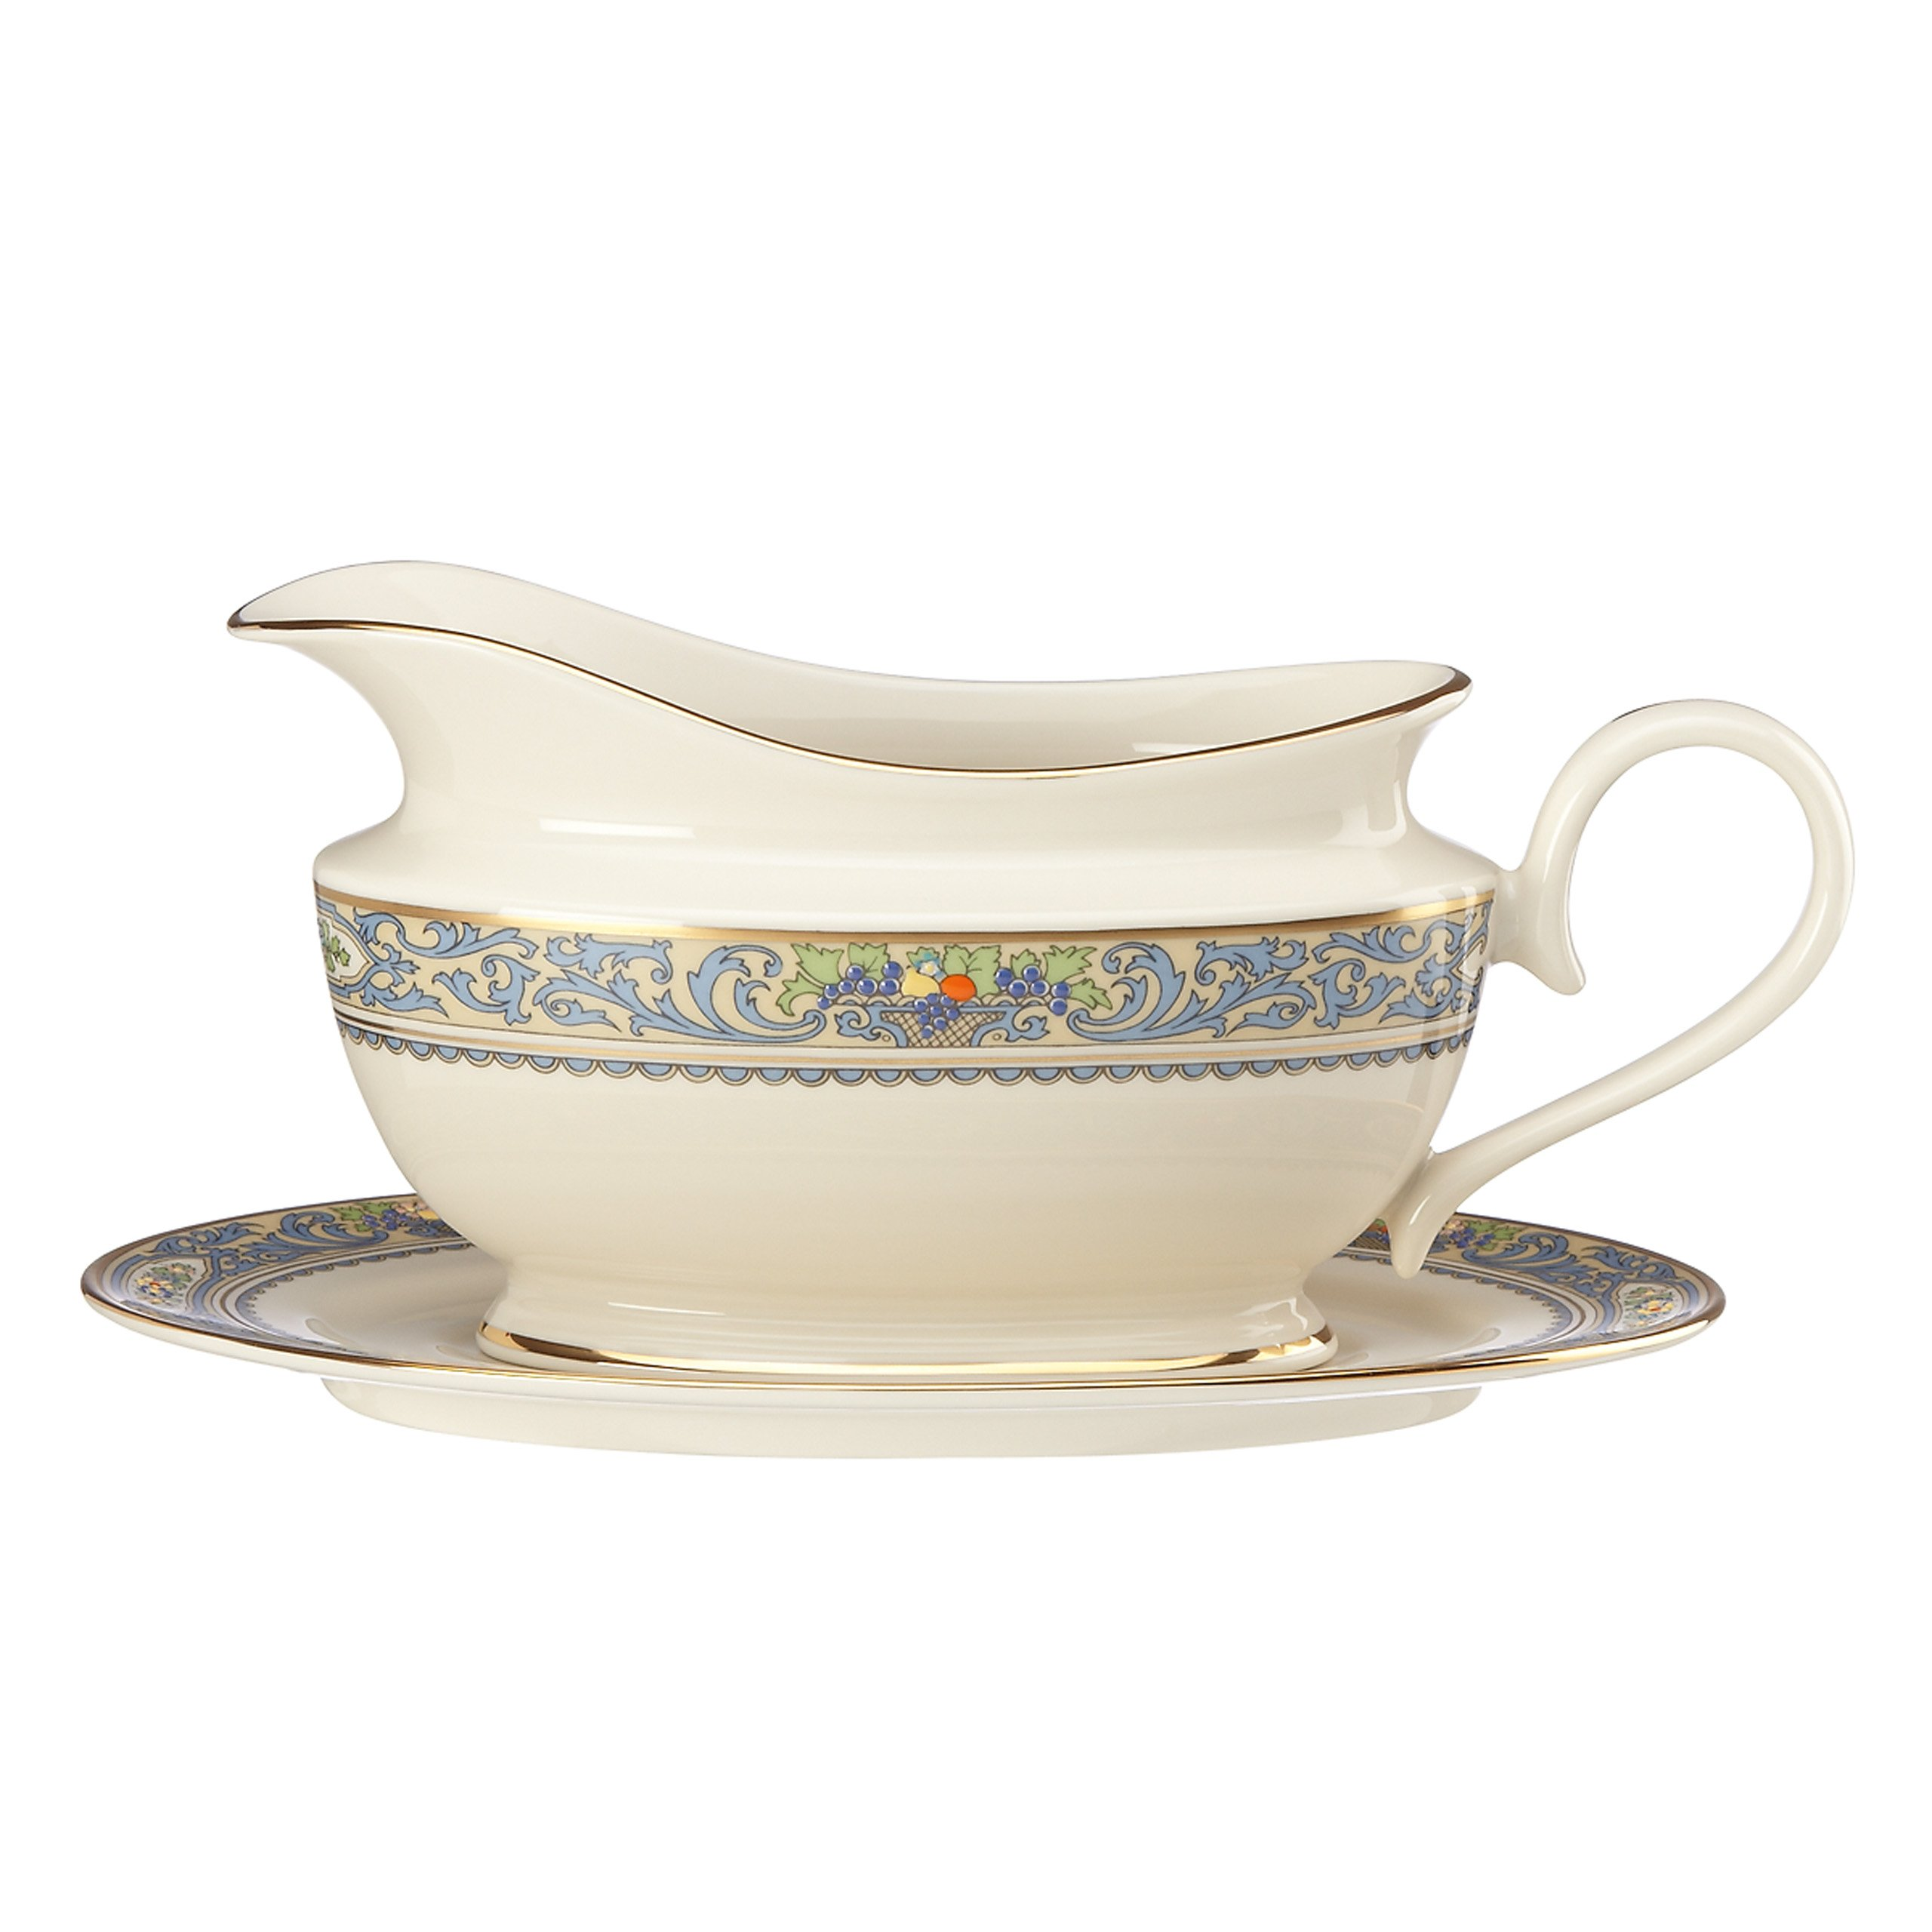 Lenox Autumn Sauce Boat and Stand, Ivory